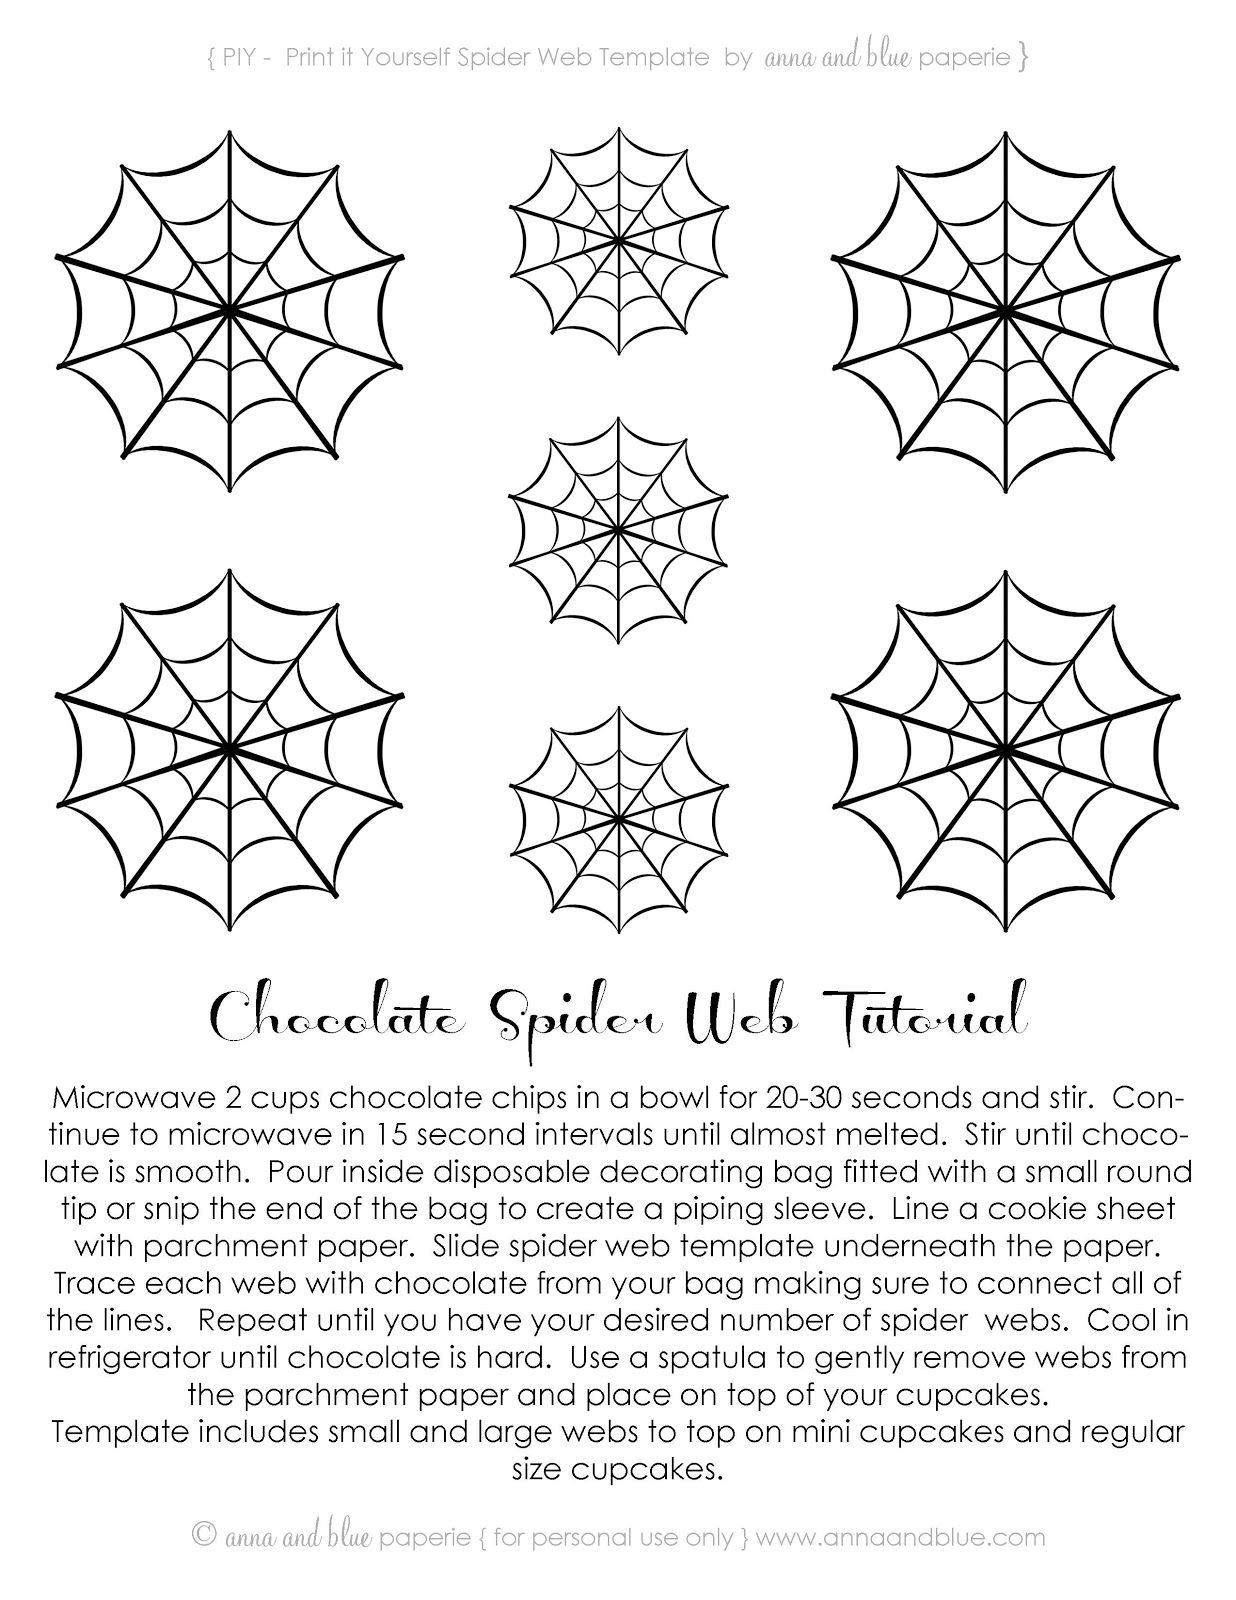 Anna And Blue Paperie Free Printable Spooktacular